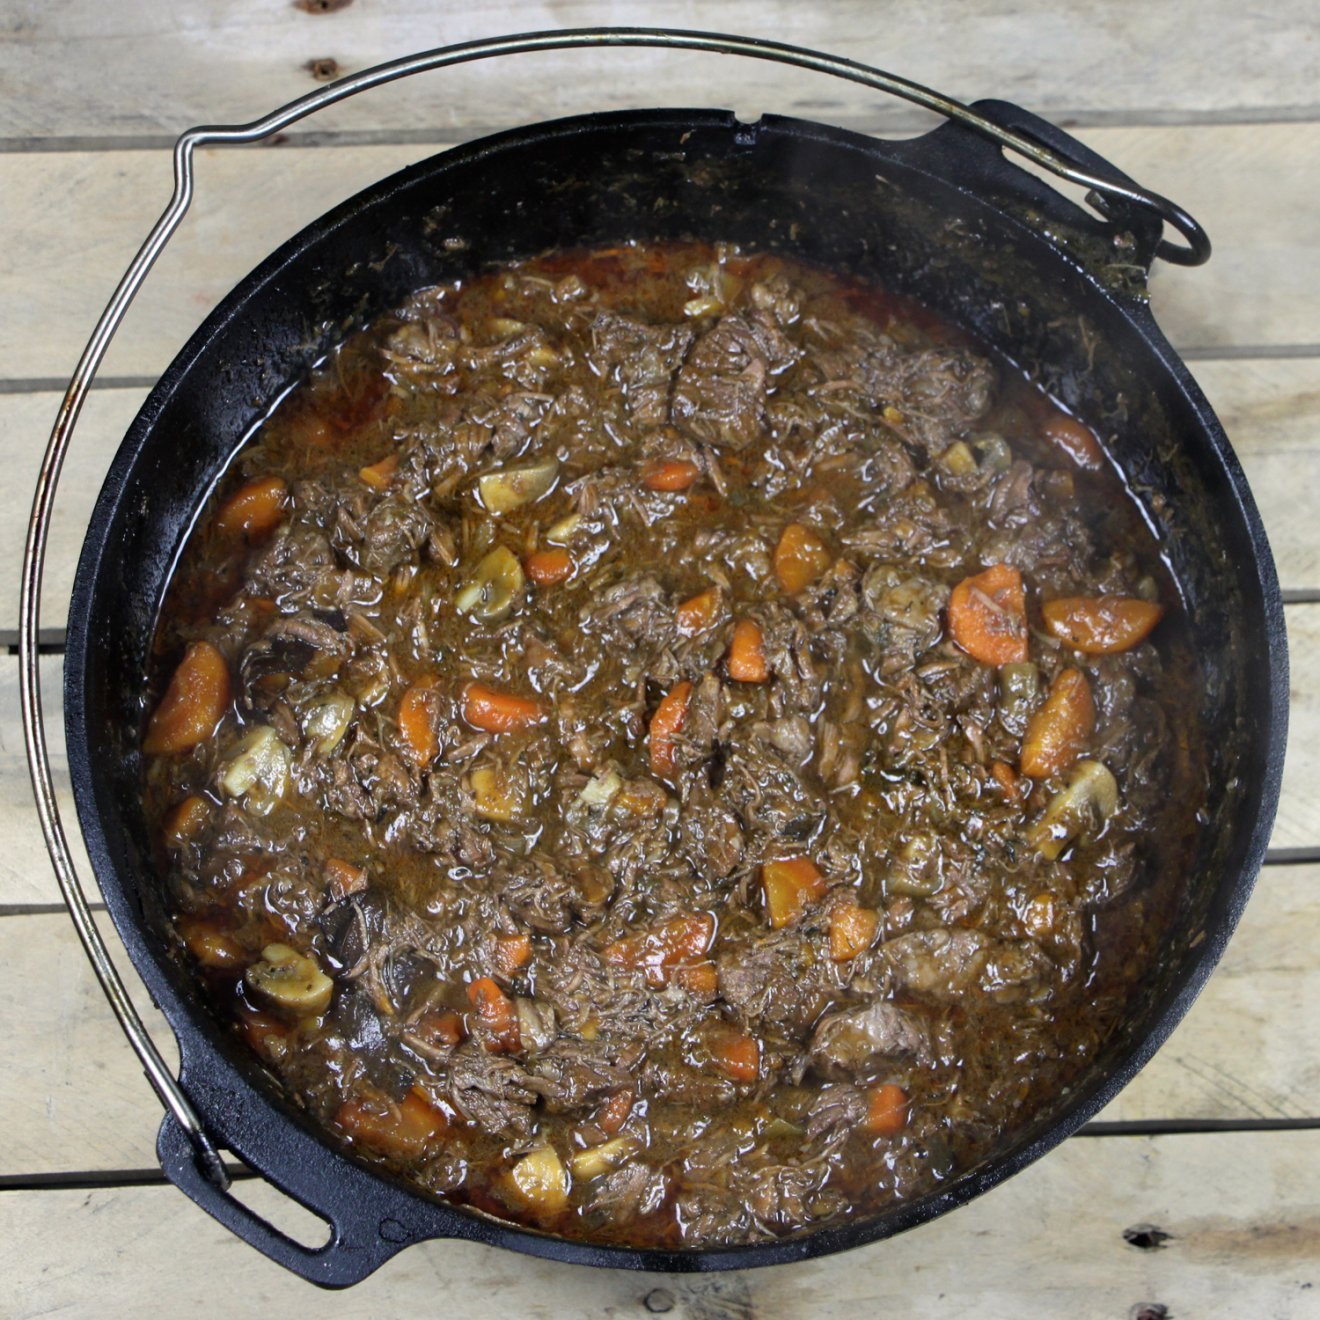 Barbecue Recept: Boeuf Bourguignon uit de Dutch Oven